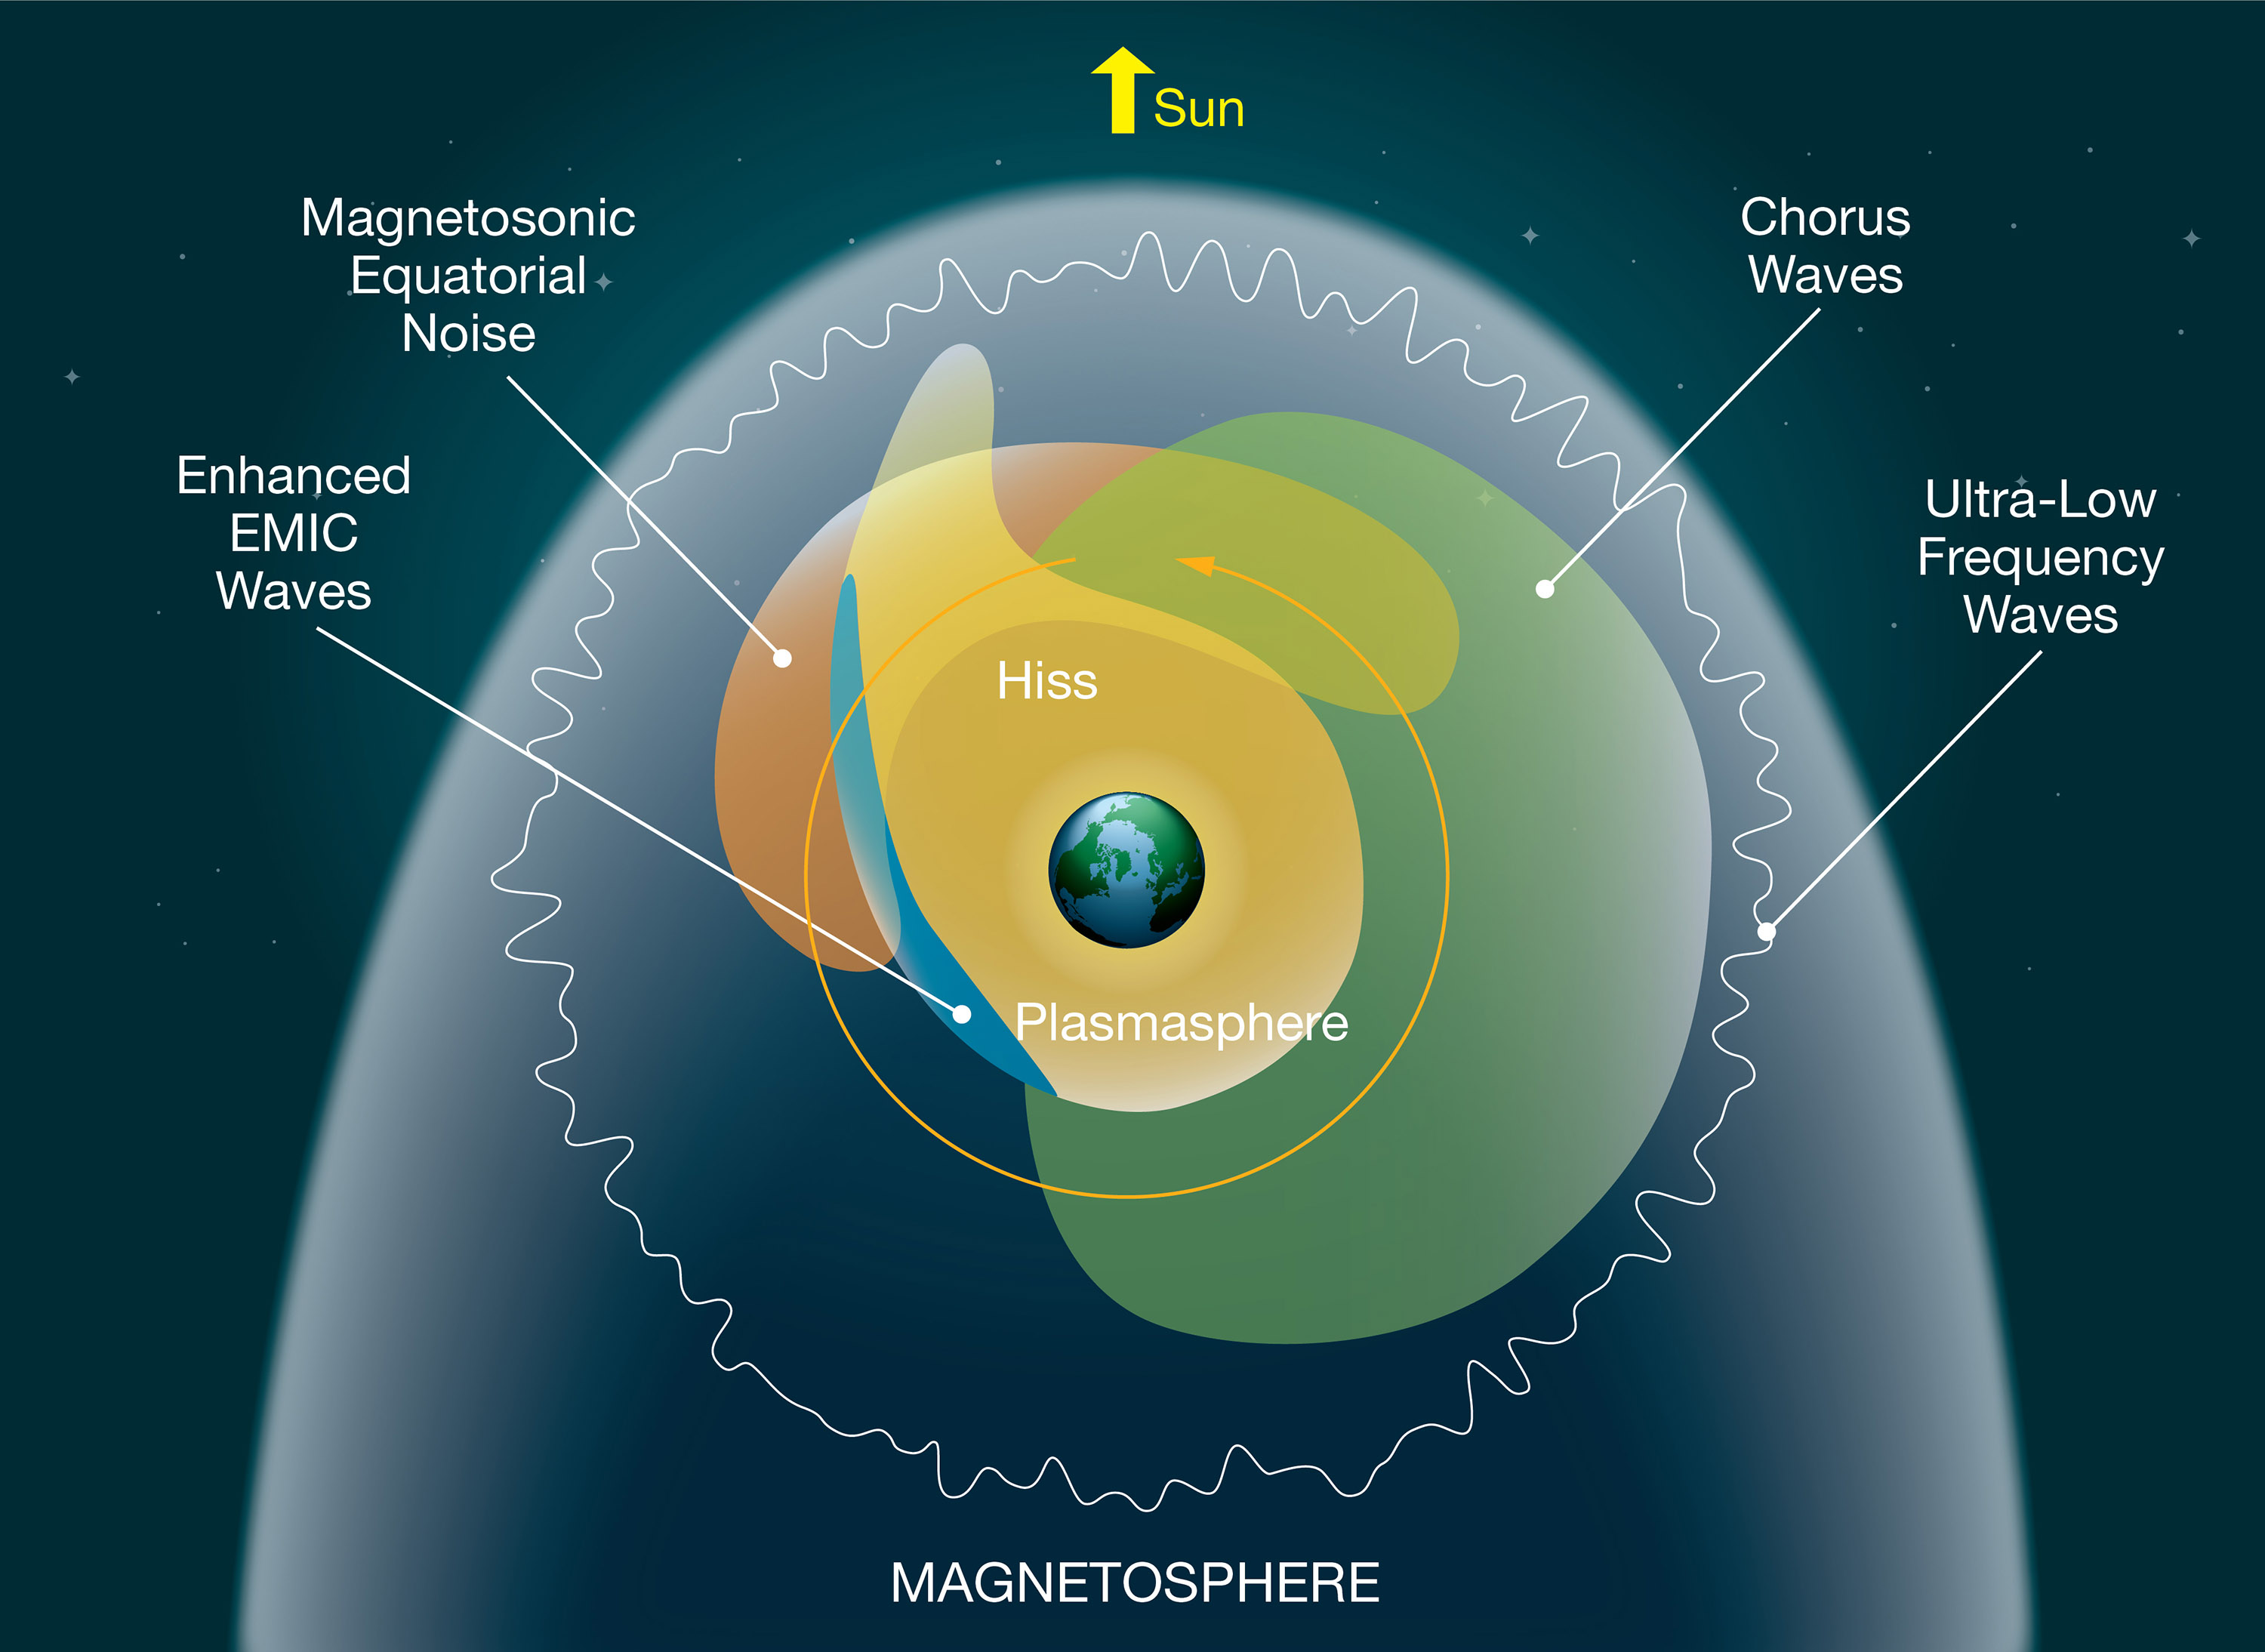 illustration of near-earth space with plasma wave regions depicted